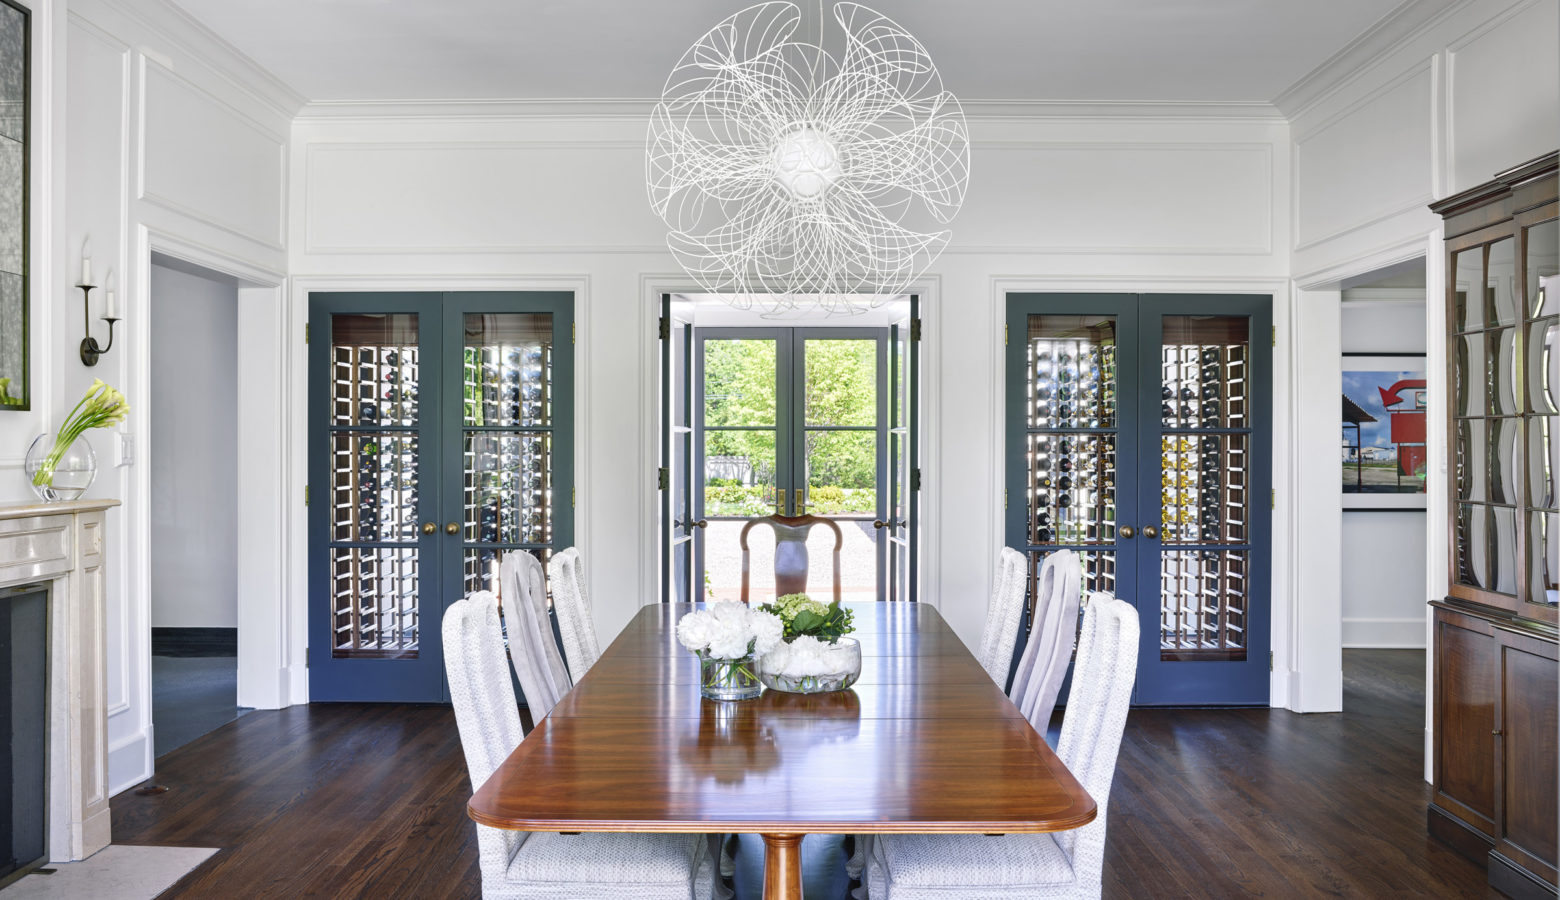 Benefits Of Residential Architects And Interior Designers Working Together Elissa Morgante